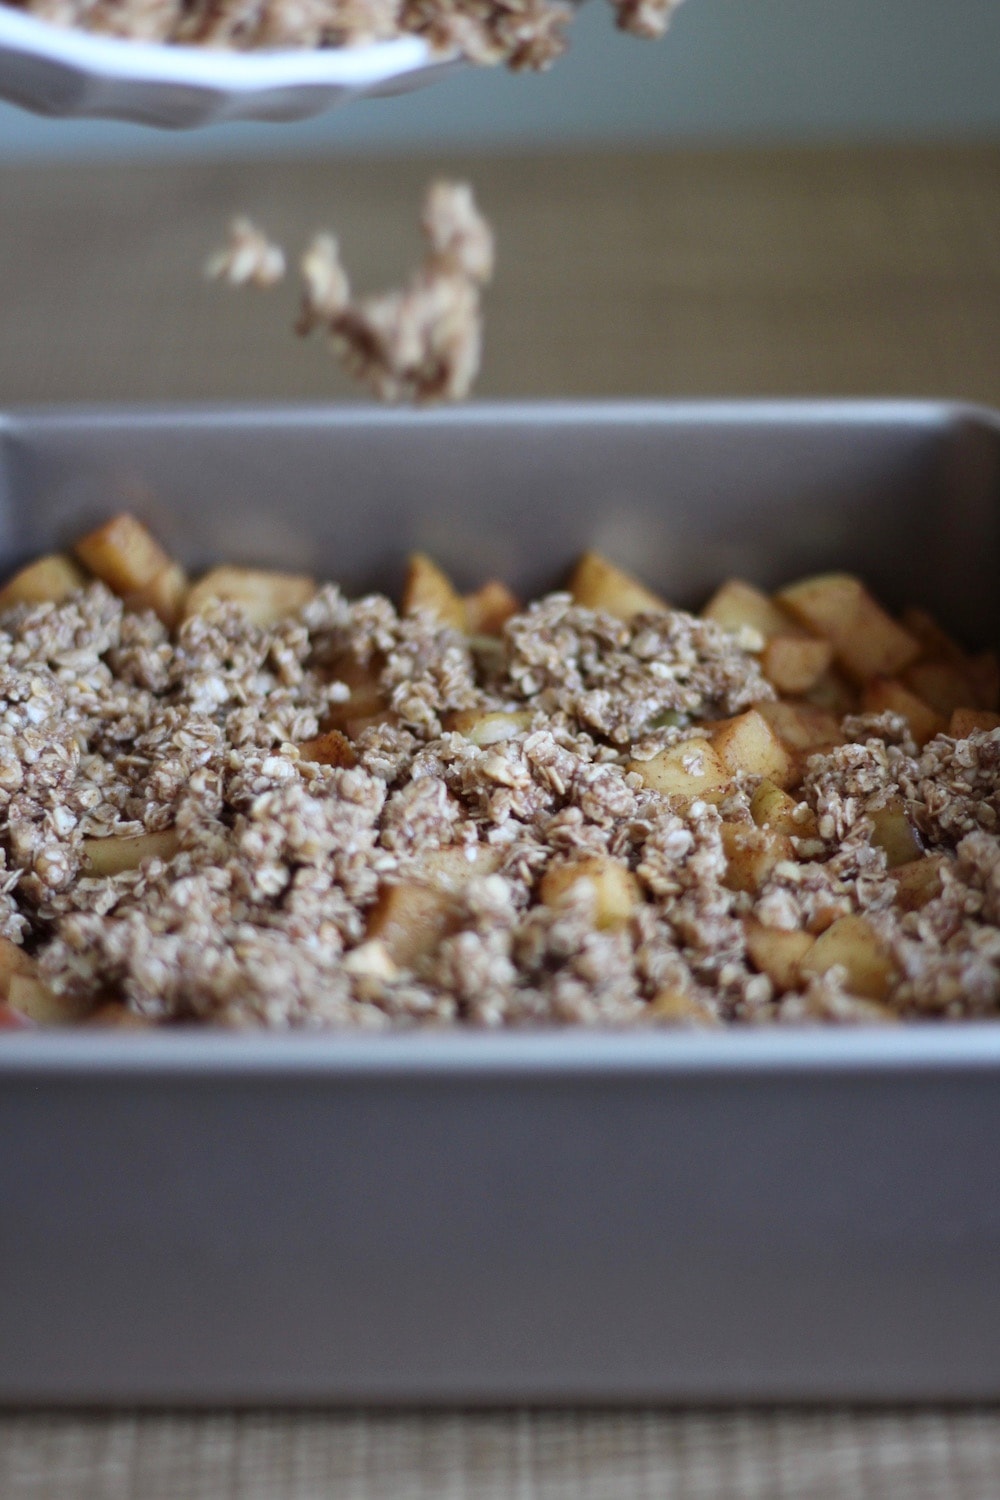 healthy crumb topping being sprinkled over apples for vegan apple crisp